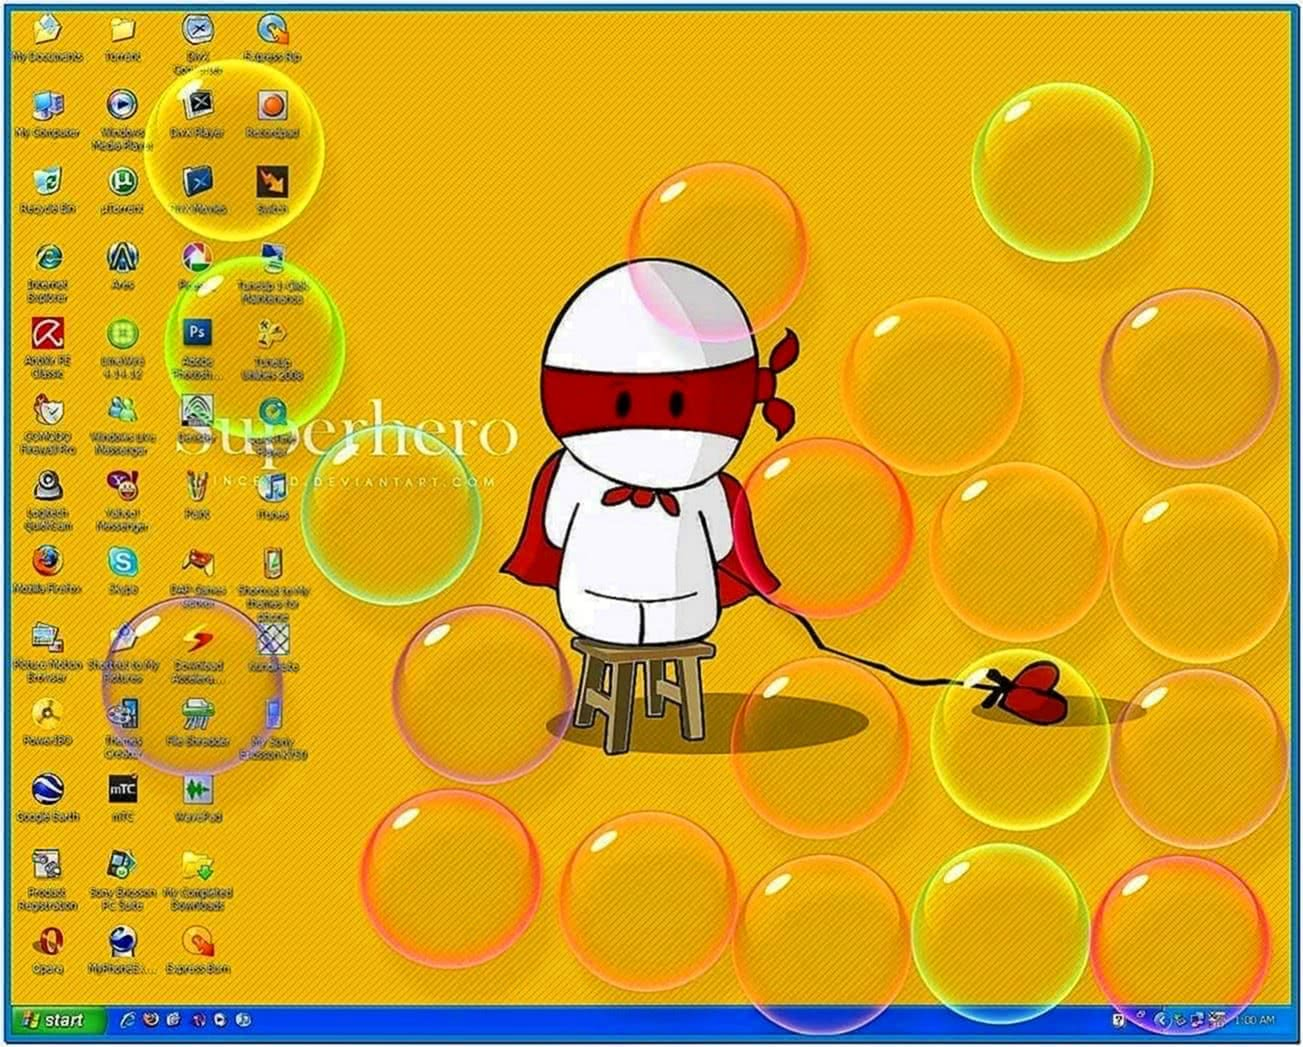 Windows Vista Bubble Screensaver XP